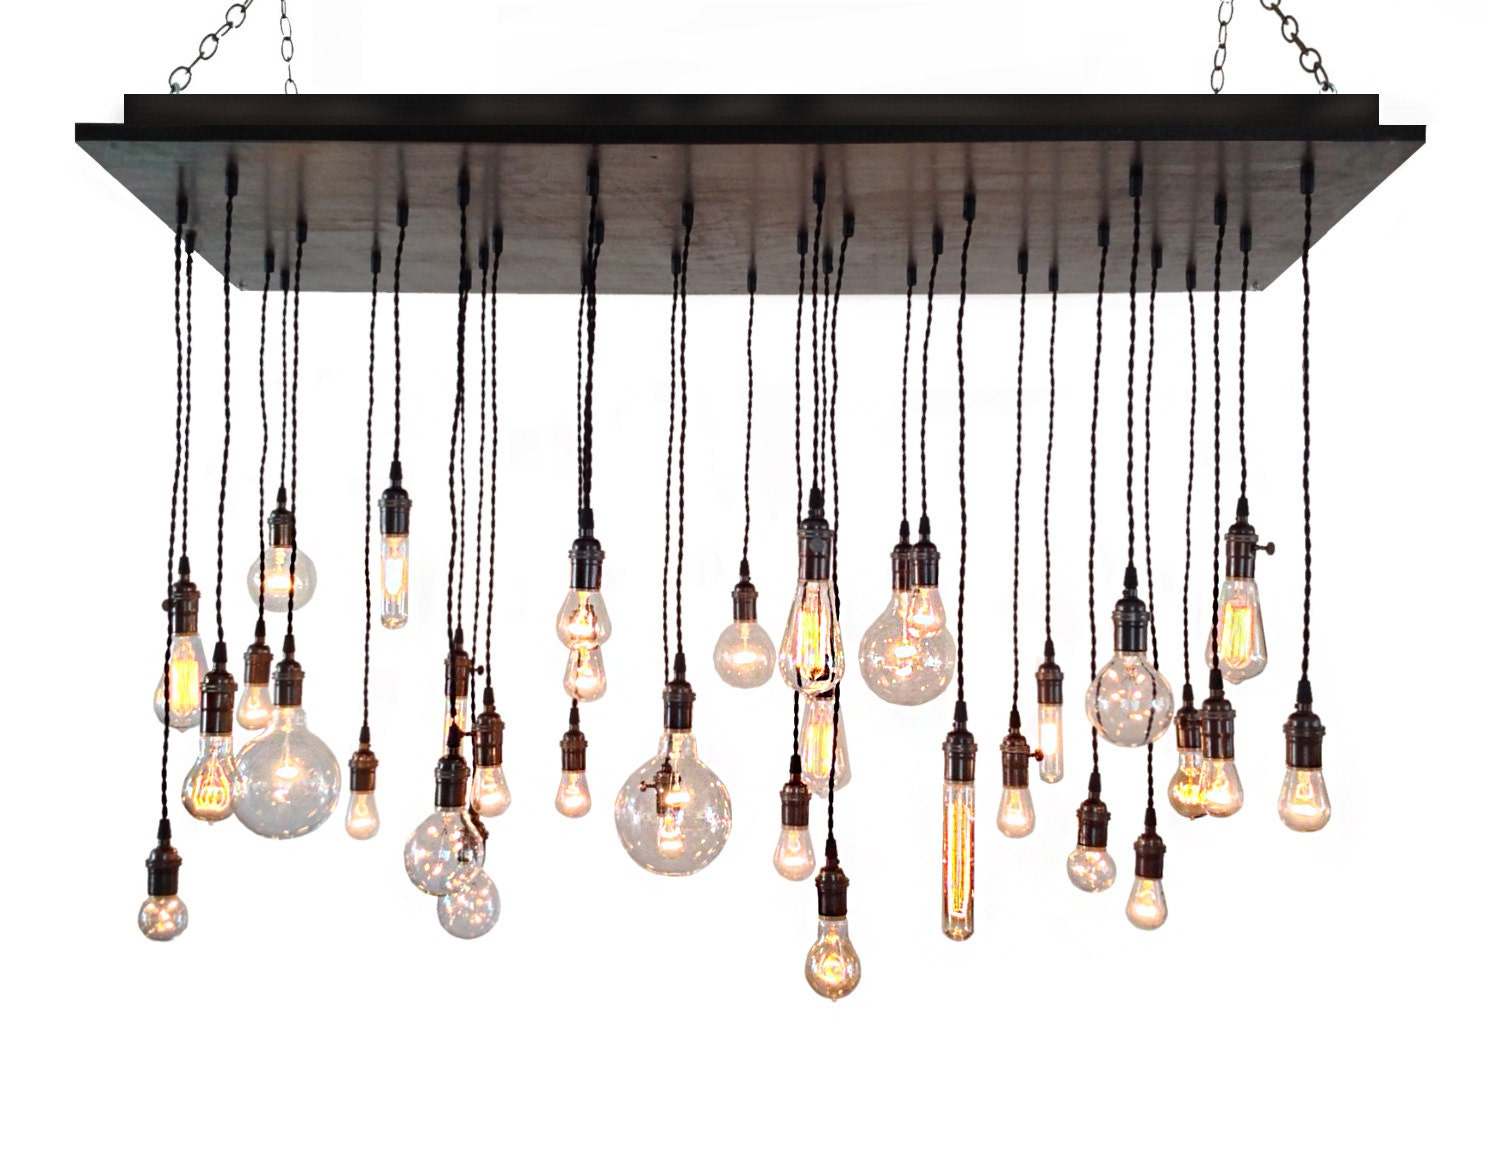 Industrial chandelier rustic lighting modern chandelier zoom mozeypictures Image collections